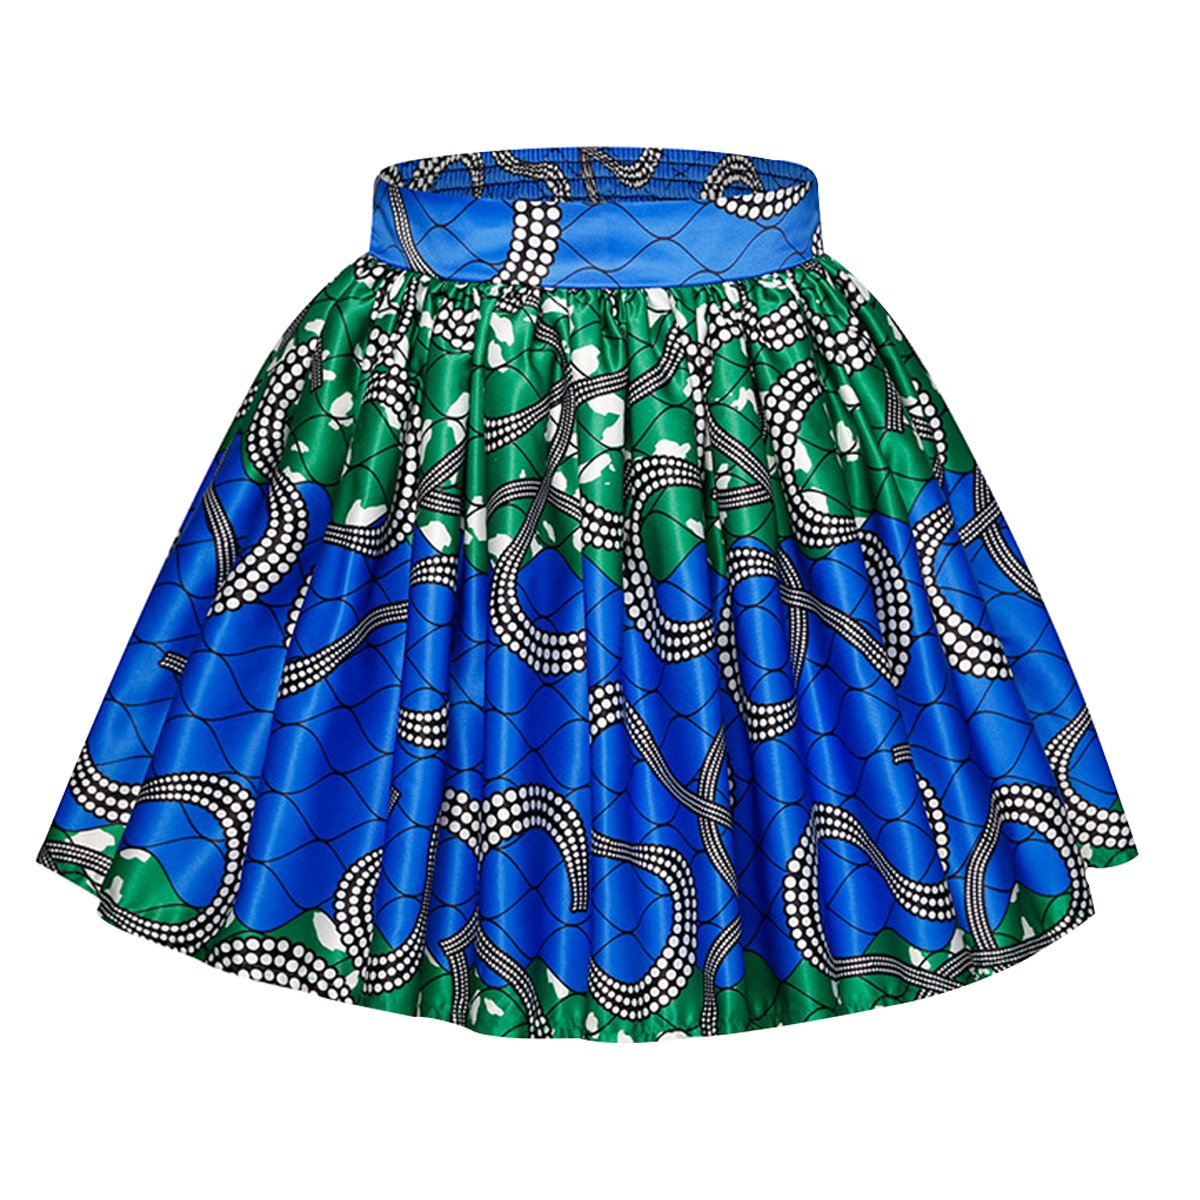 Monique Women African Style Floral Print Short Skirt Mini Parachute Bubble Skirts At Amazon Women's Clothing Store: African Wedding Dresses Monique Kindl At Reisefeber.org